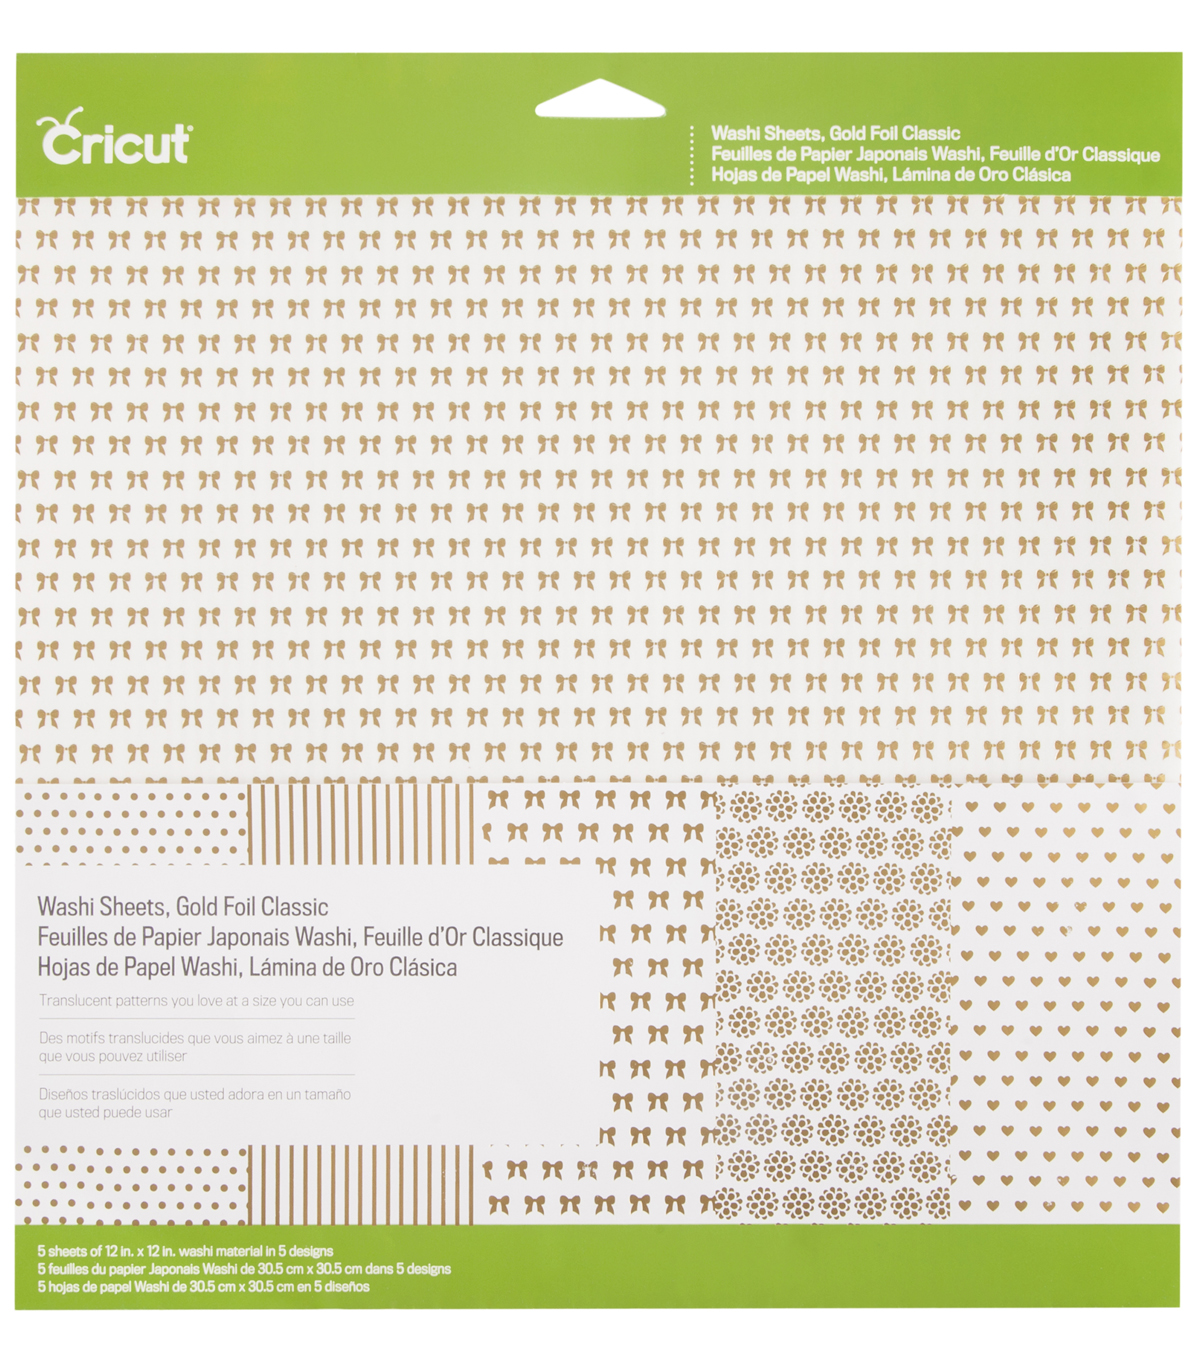 Cricut® 12x12 Washi Sheet-Gold Foil Classic